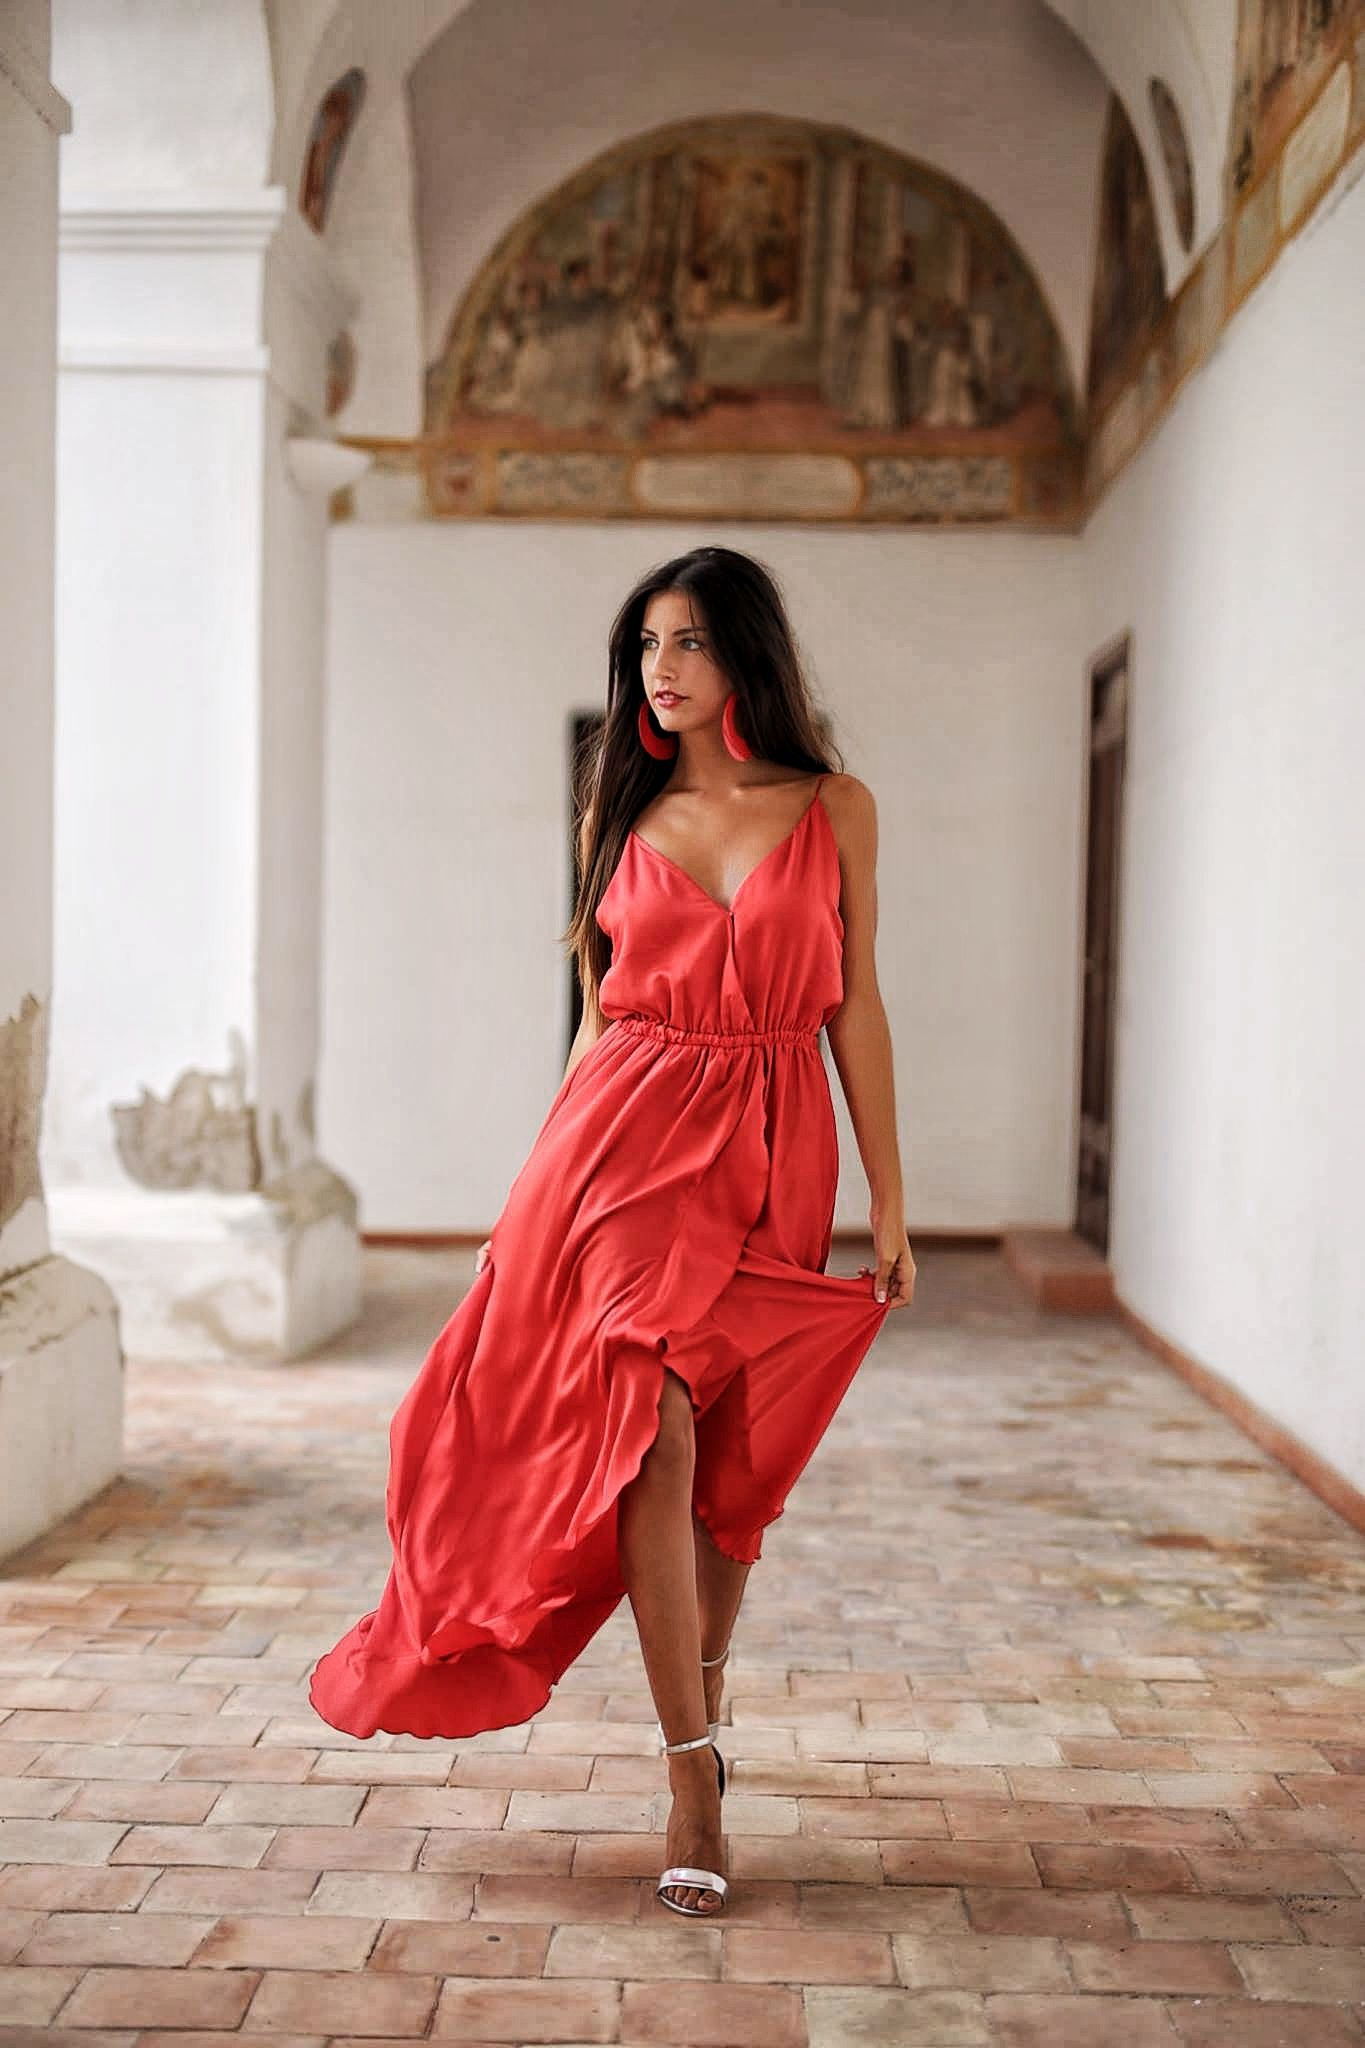 Red Dress Collection Agua na Boca by Daniela Poggi #fashionshow #danielapoggi #modelsrunway #italy #boholuxe